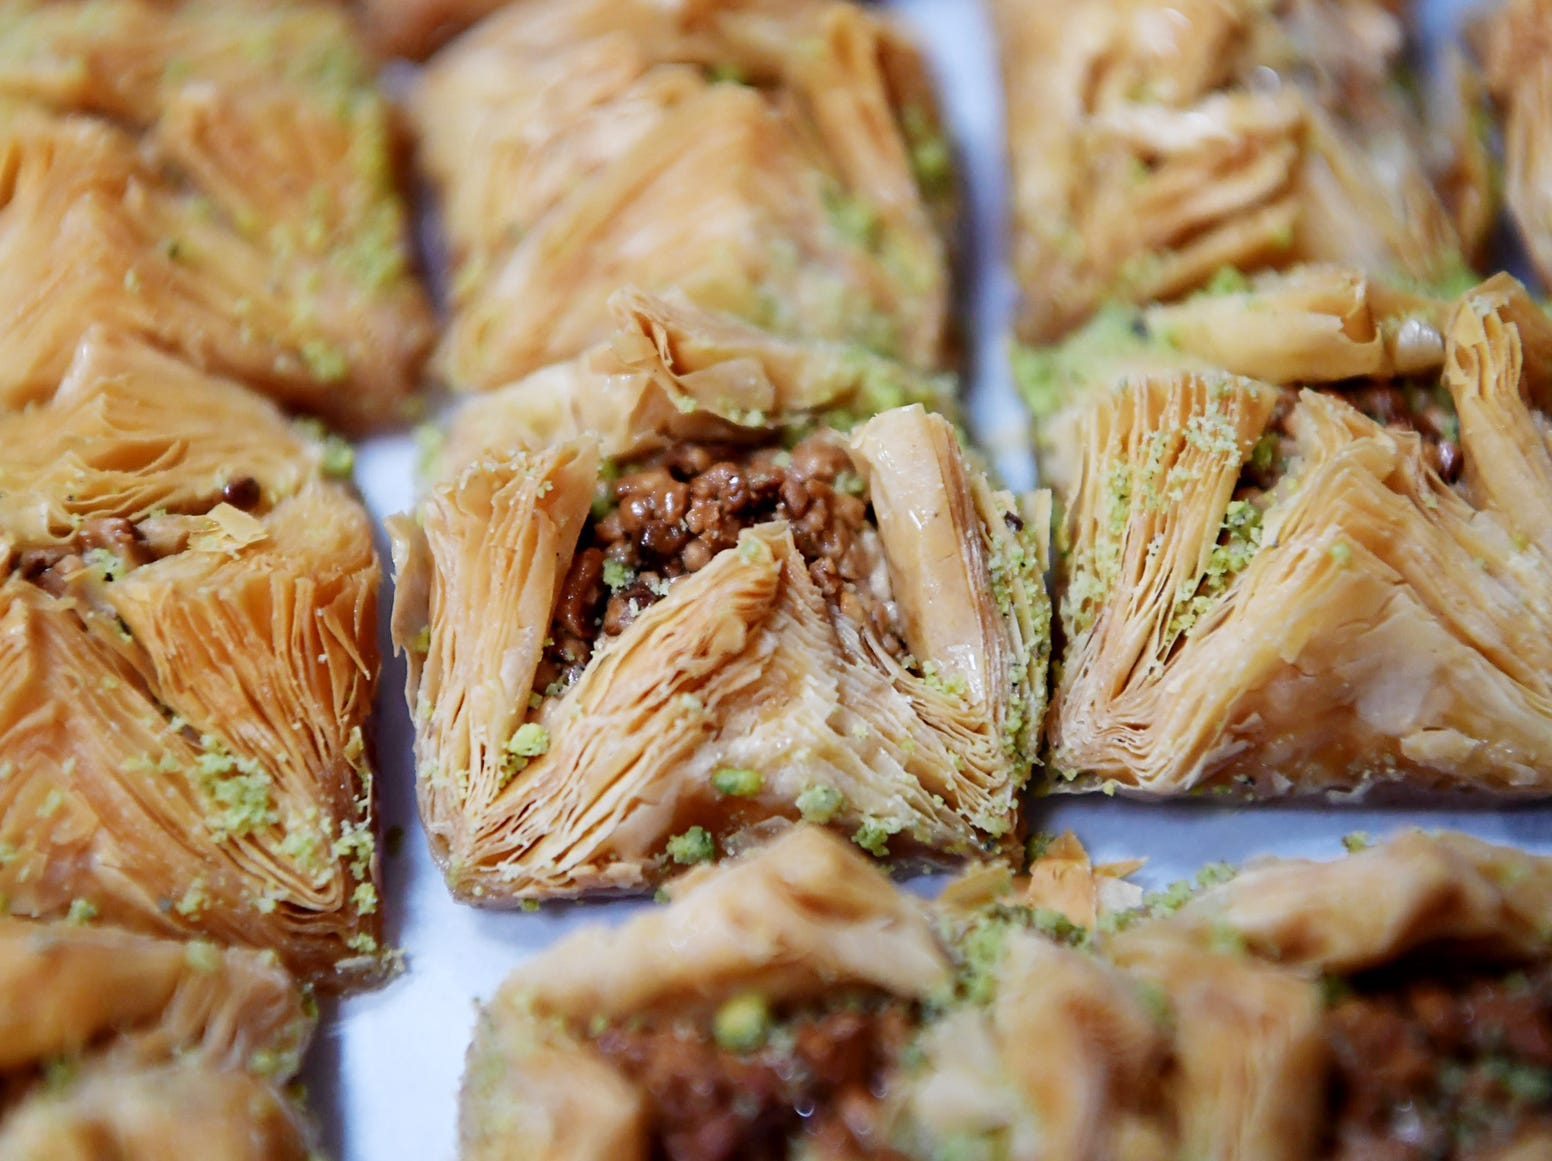 Mr. Kabab had several types of baklava for sale Dec. 11, 2018.